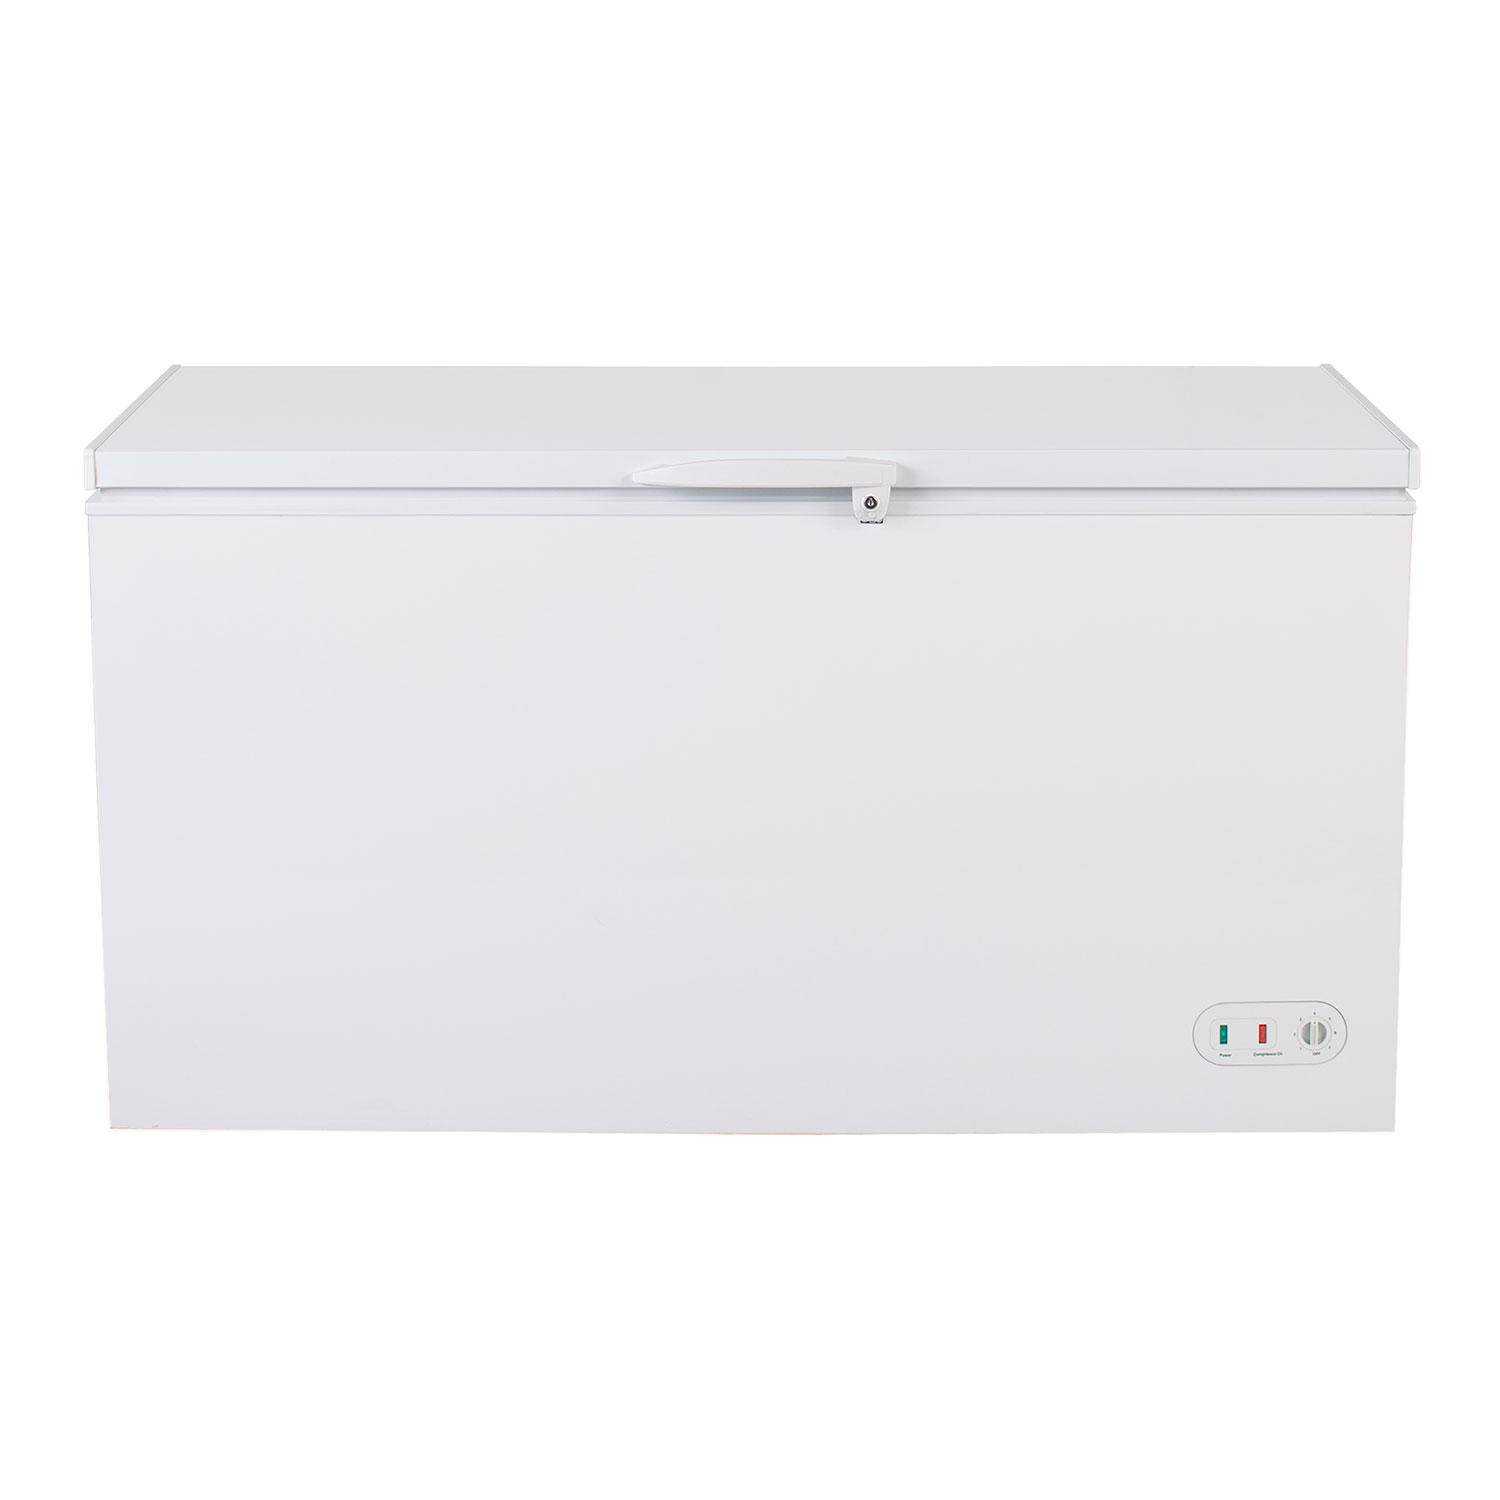 Maxx Cold Chest Freezer, Solid Top with 15.9 cu.ft. Capacity